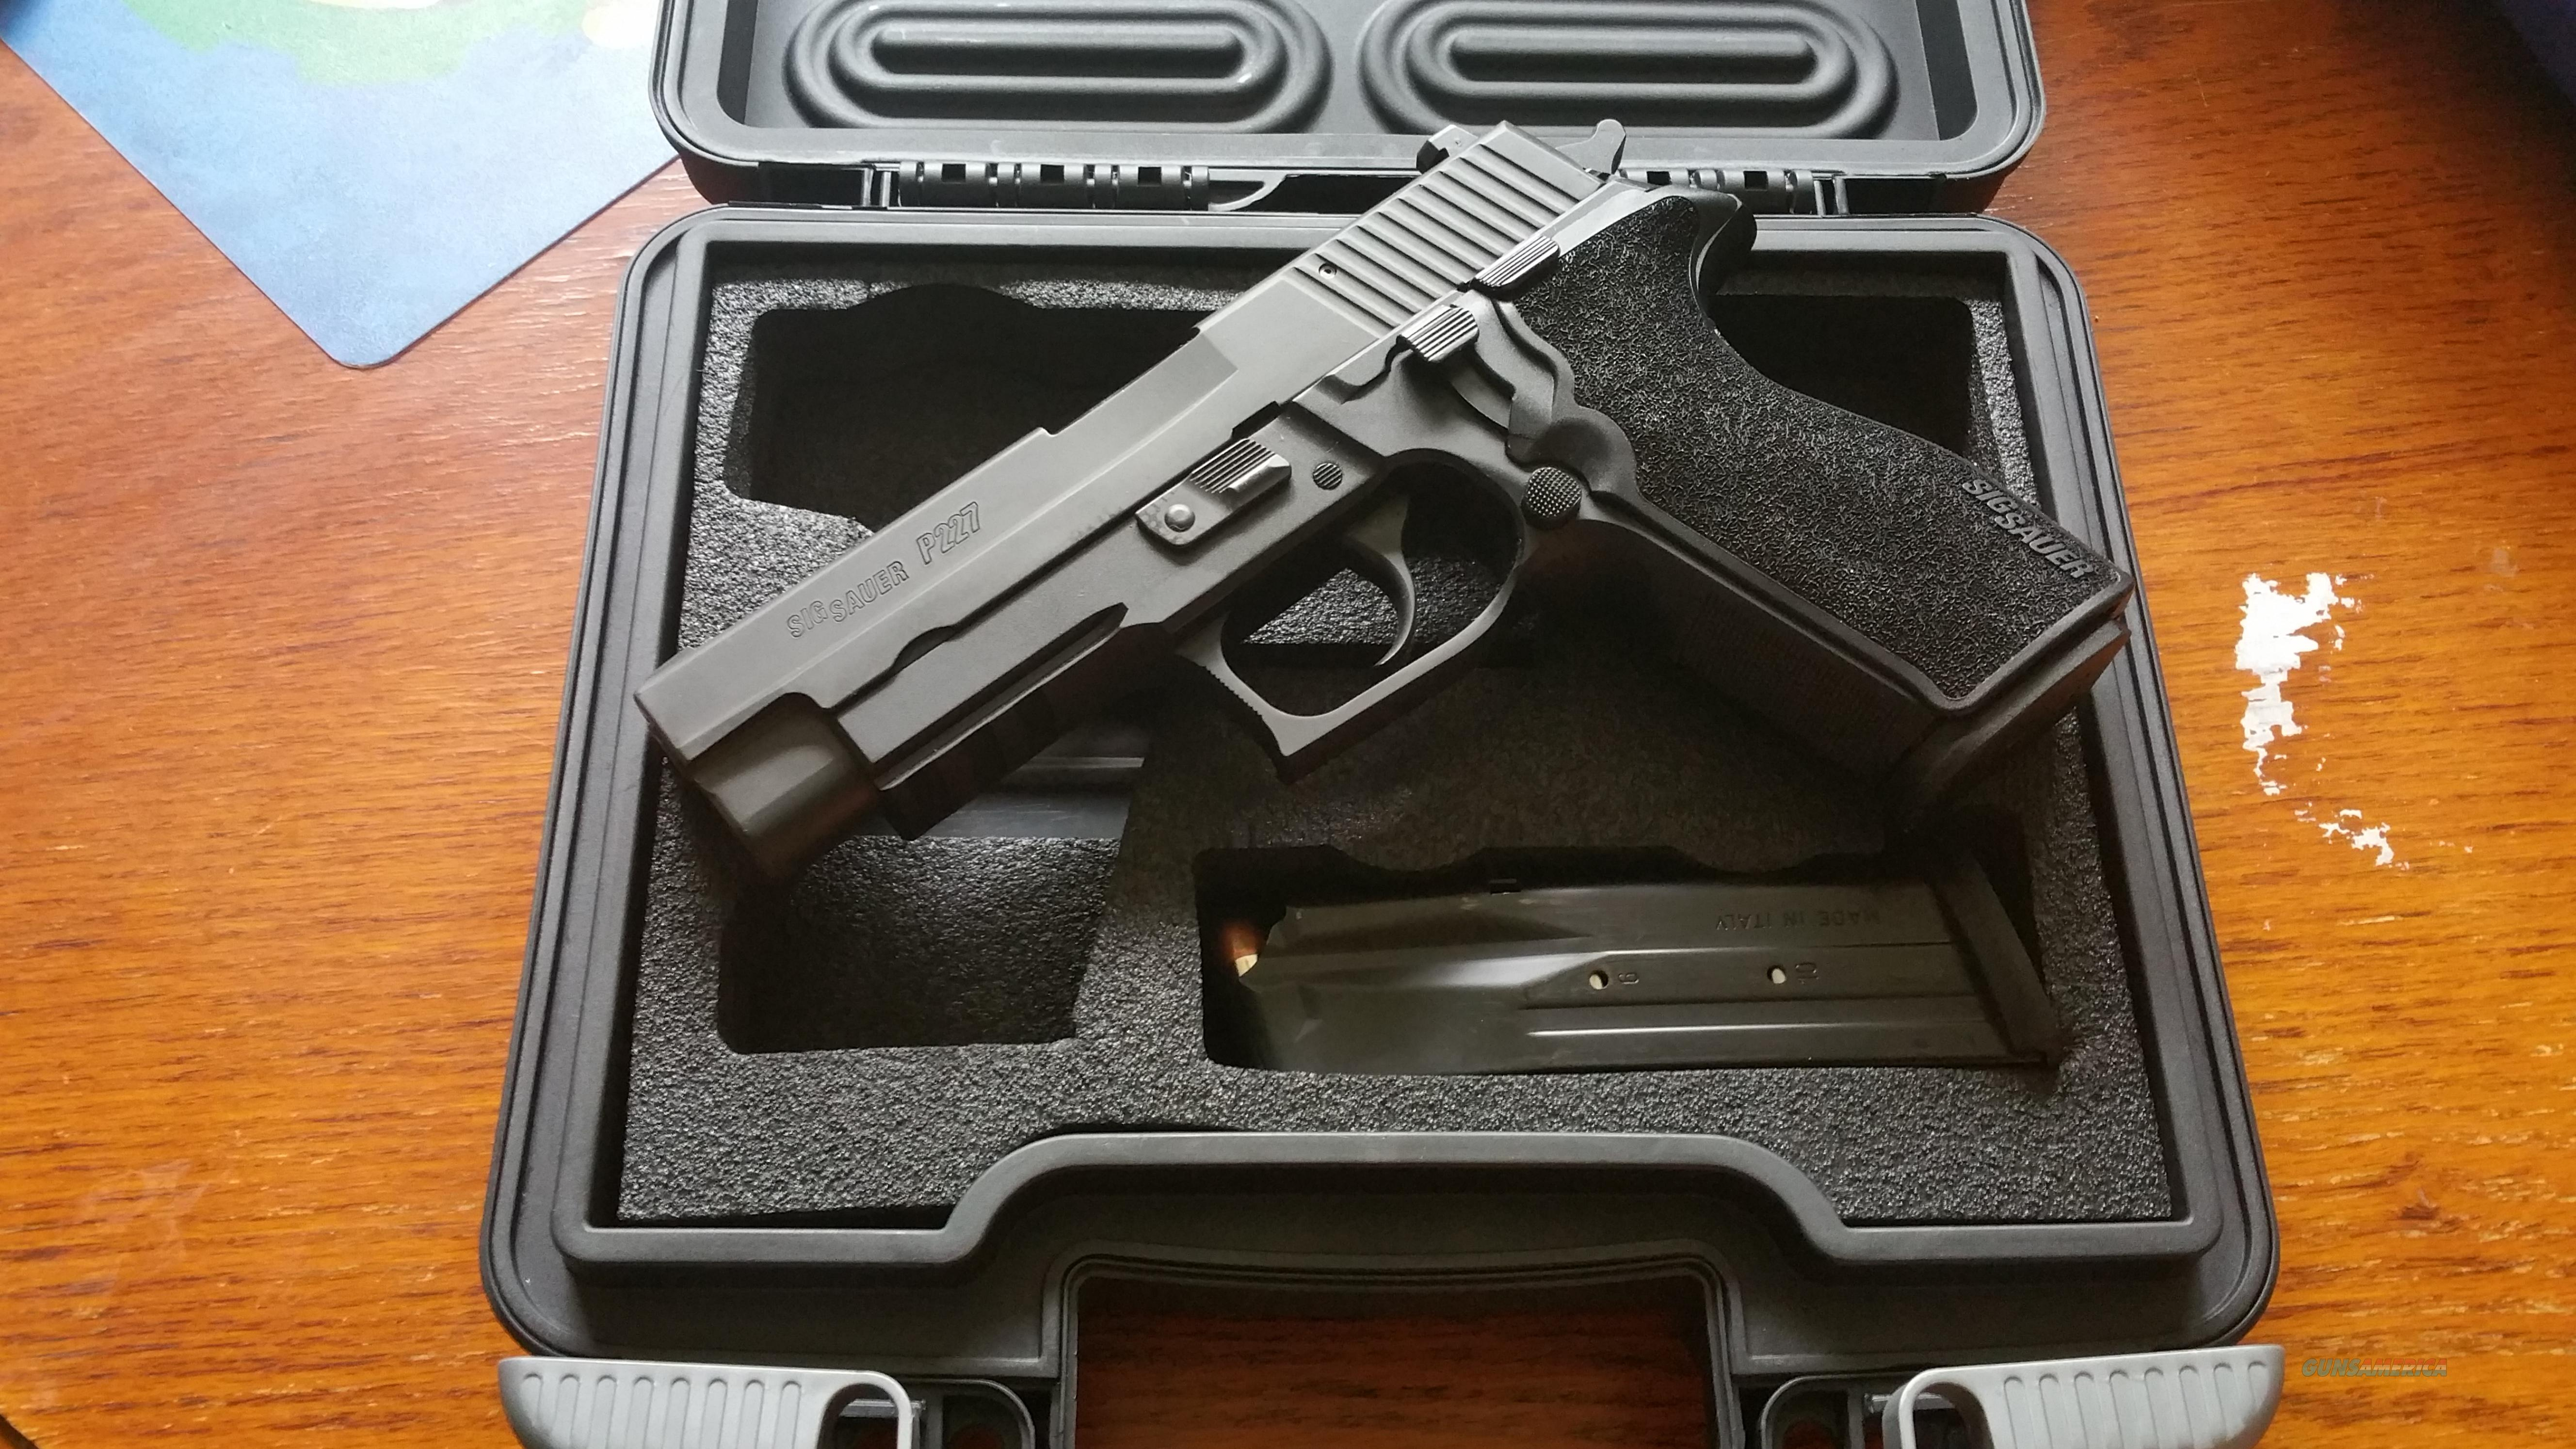 Sig P227 fired less than 100 rds 3 mags 2 holsters night sights  Guns > Pistols > Sig - Sauer/Sigarms Pistols > P227